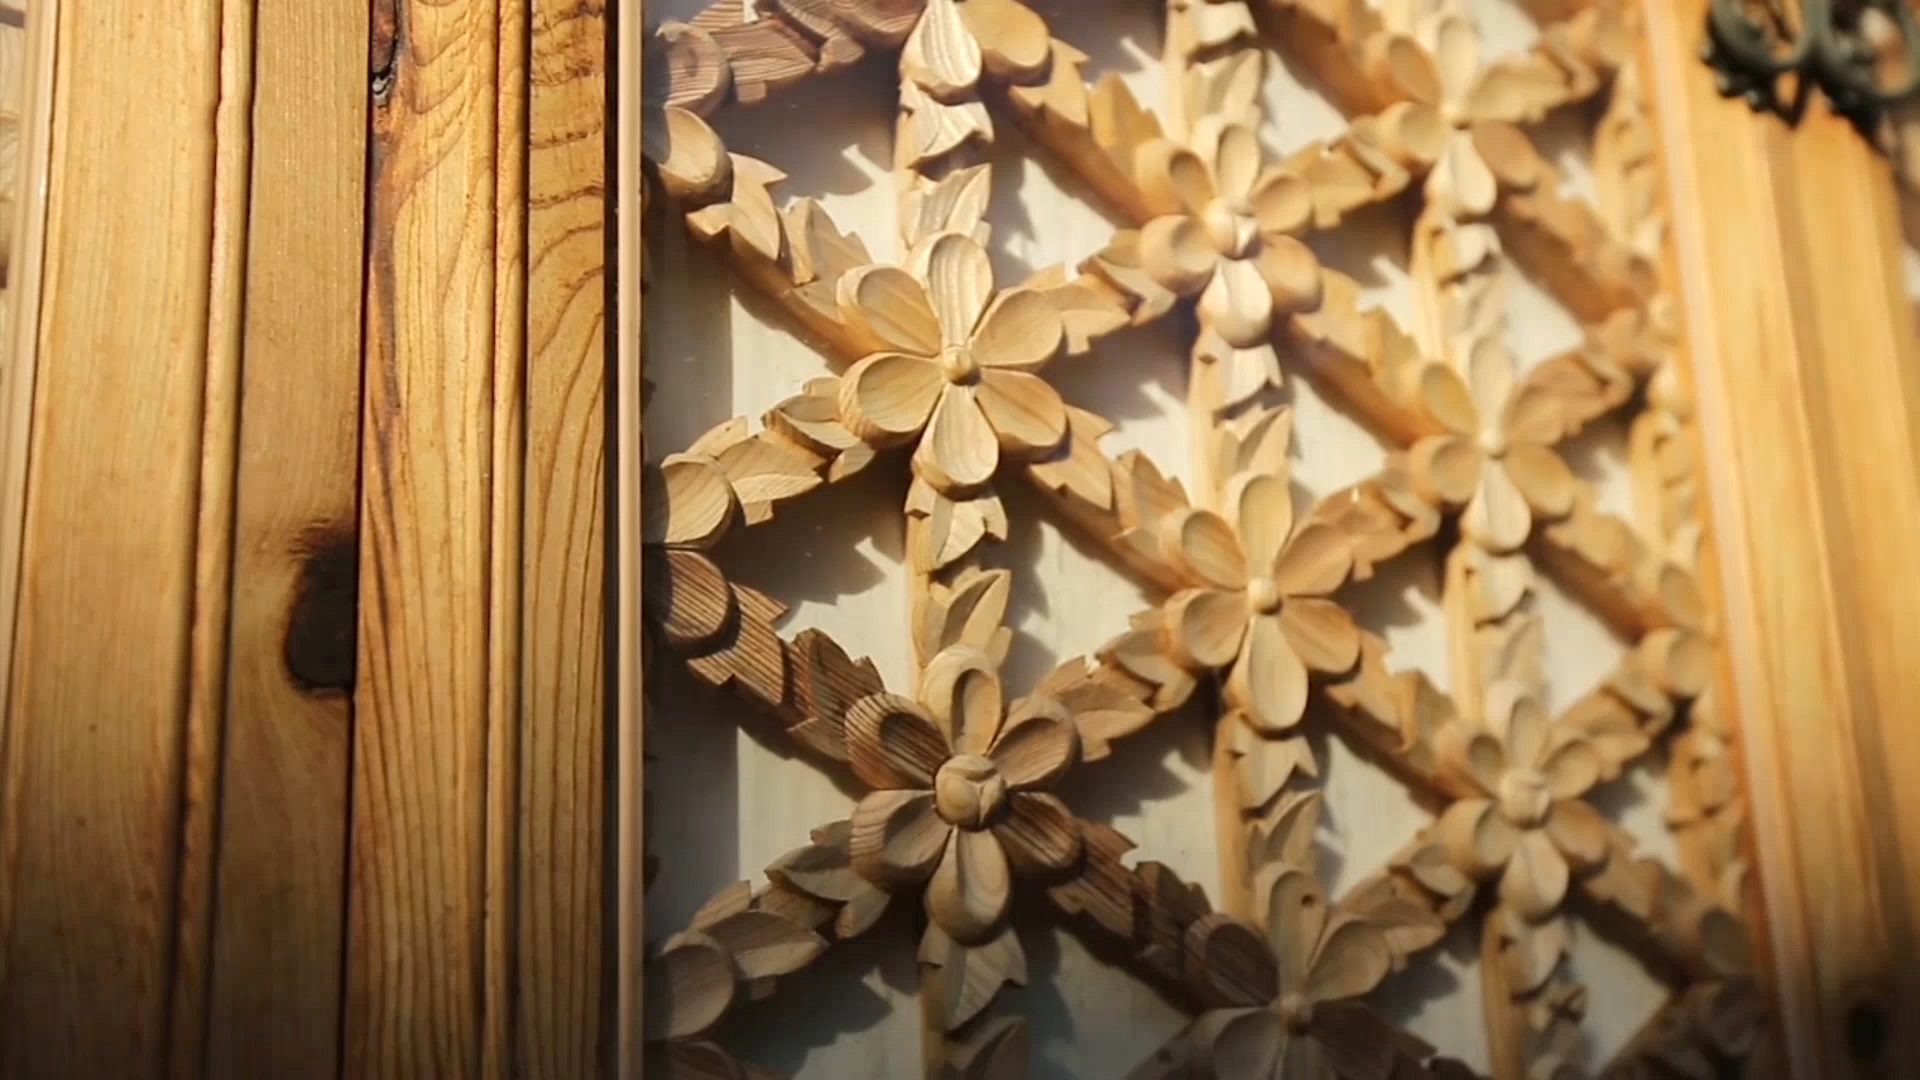 [NOW] Beauty of Korean Traditional Crafts